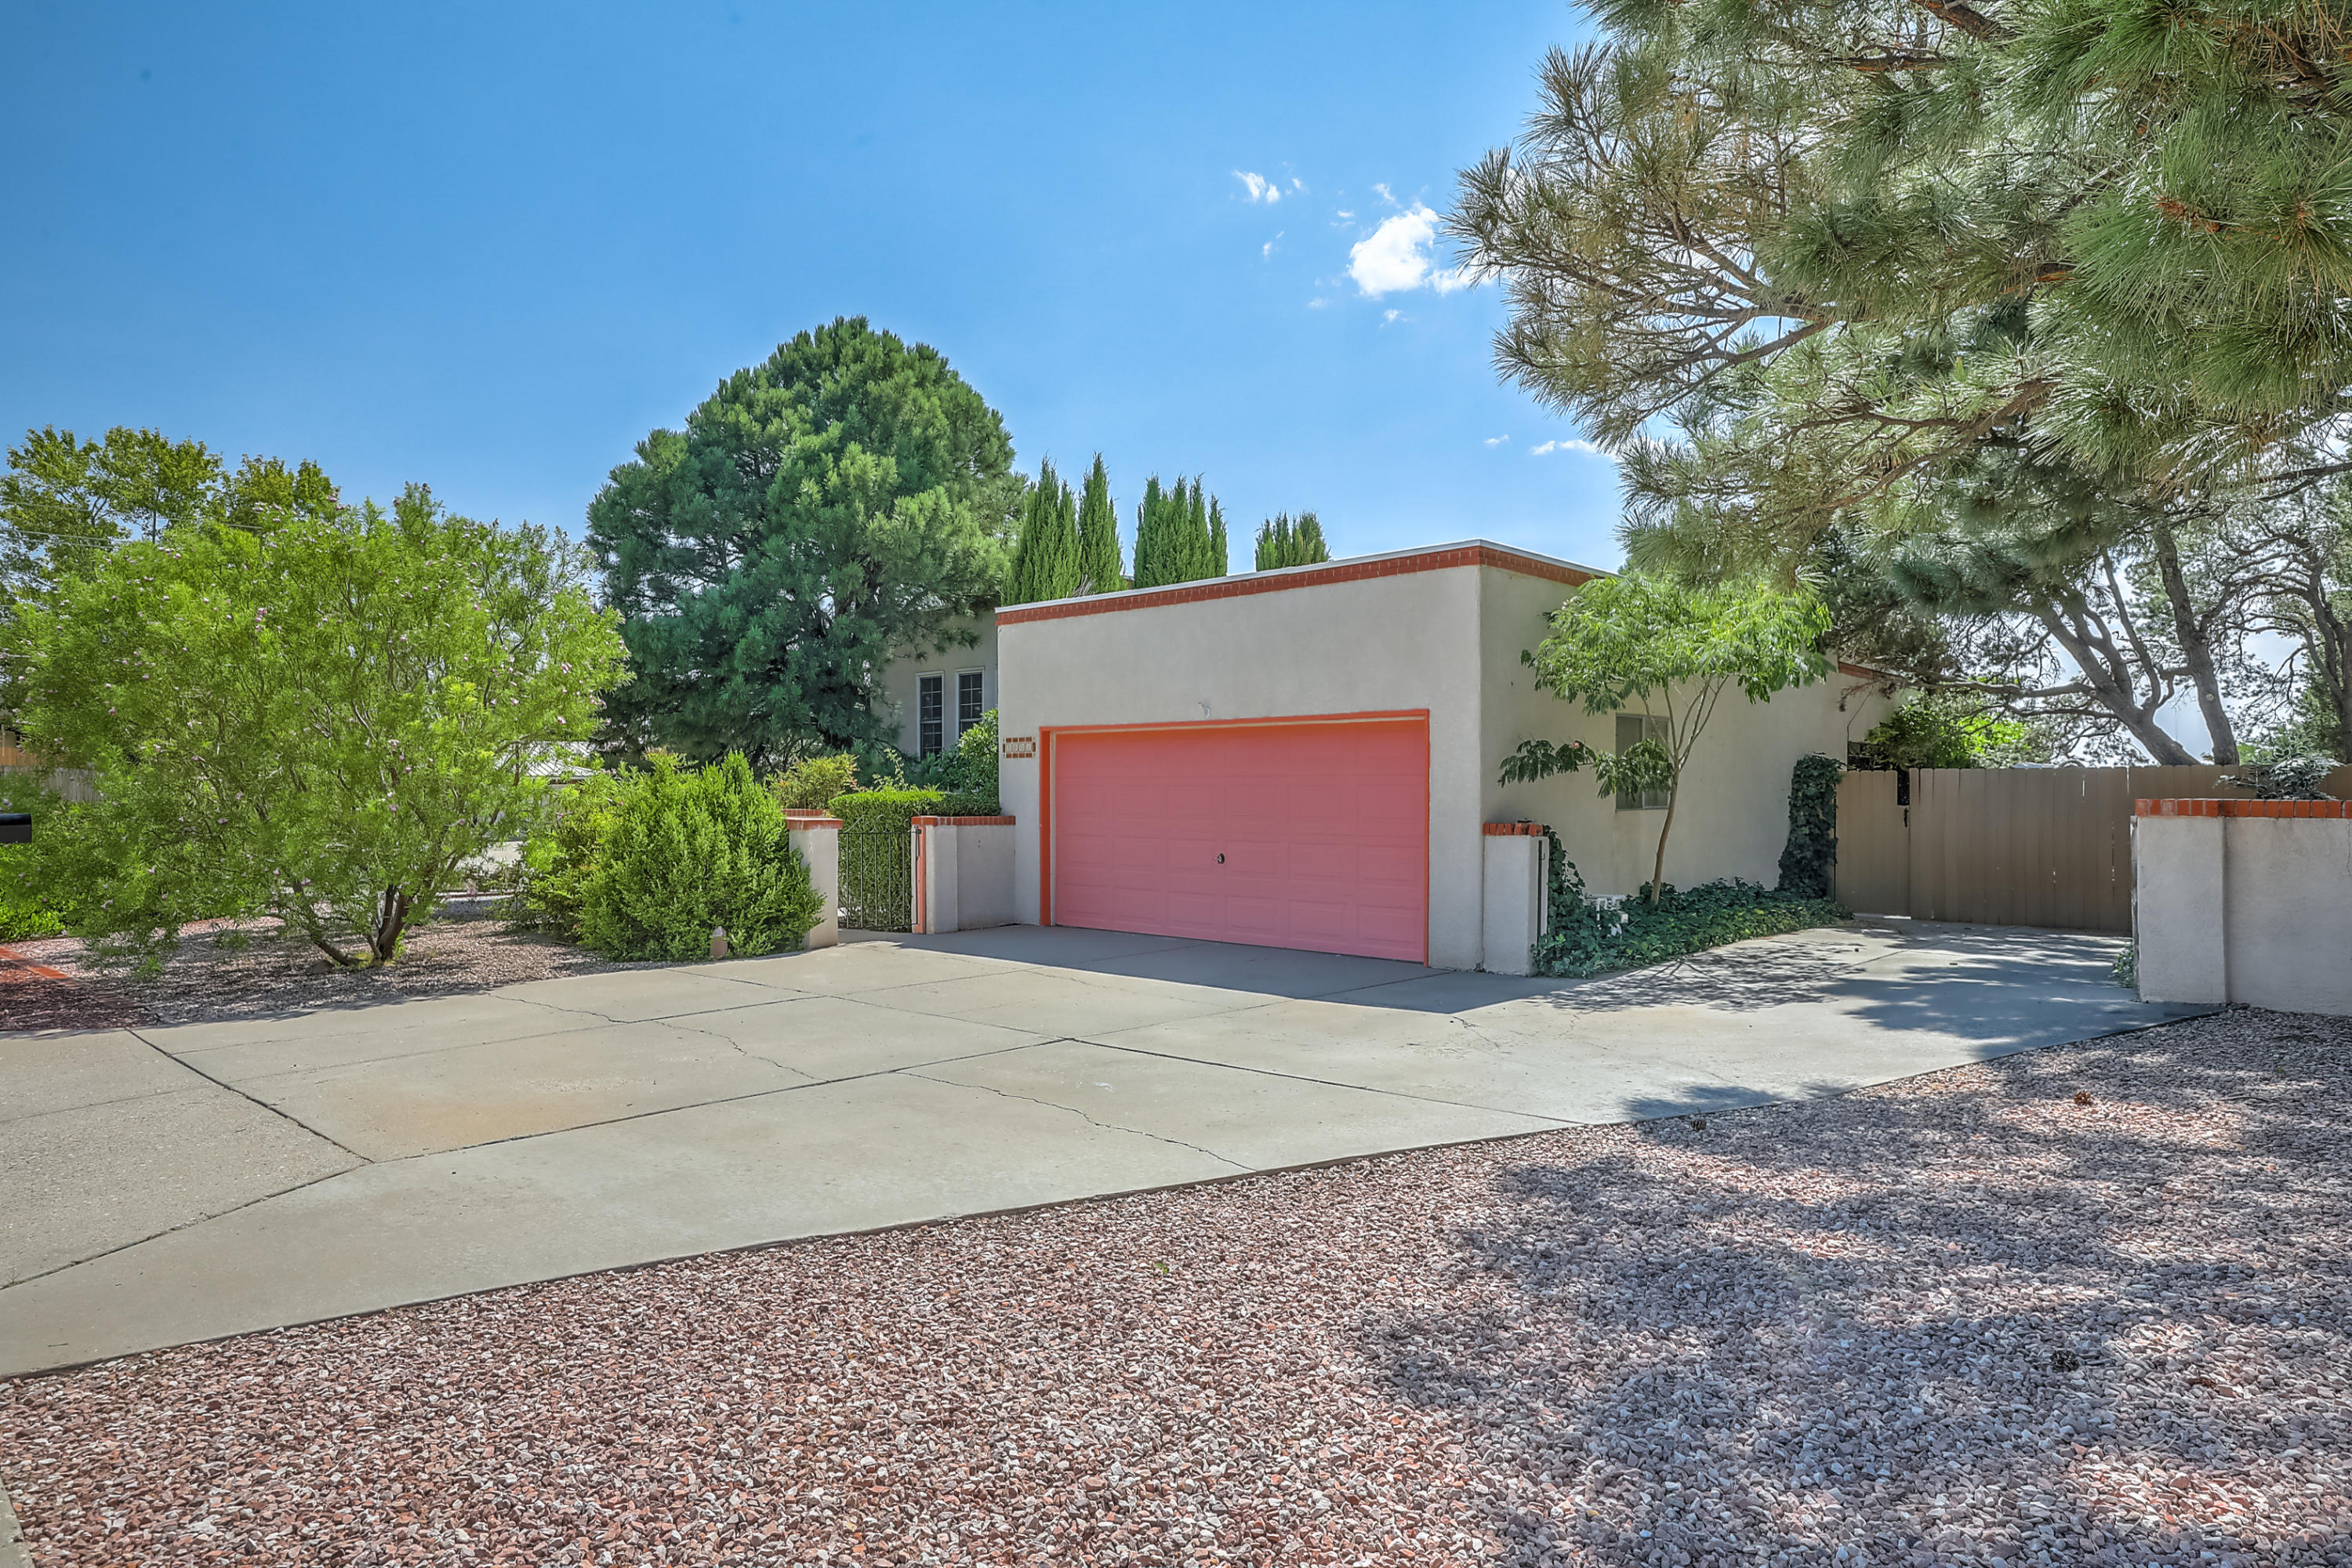 Don't miss out on this Desirable Foothills Location! This 4BDR 2Full Bath home is in a Great School District. Close to Tramway for easy access anywhere in town. Just minutes from walking hiking and biking trails. Extremely private, with a beautiful fully landscaped fenced backyard. Includes a large covered patio which is perfect for your families outdoor living. Separate back yard access to park your RV off and away from the driveway. This home boasts 2 large living areas. The spacious family room has built in bookshelves a built-in wet bar, a step down conversation area all situated around the fireplace. Separate dining room and large bright living room is great for entertaining.  Enjoy your light filled eat-in kitchen with views of the mountains which also, includes a desk hutch area.